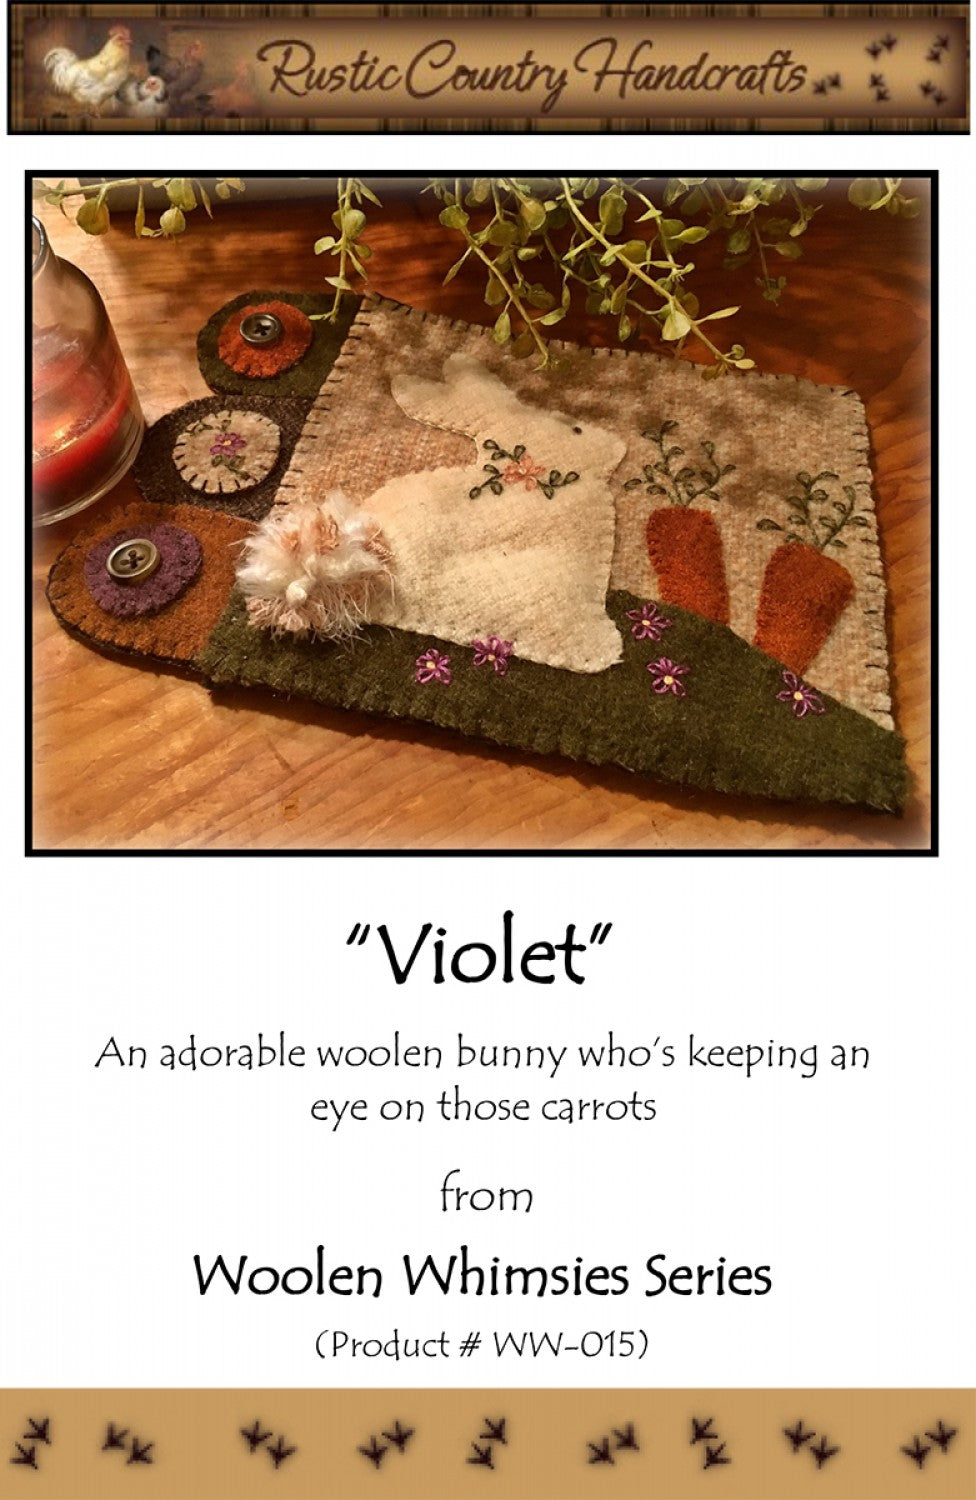 Violet Pattern by Rustic Country Handcrafts